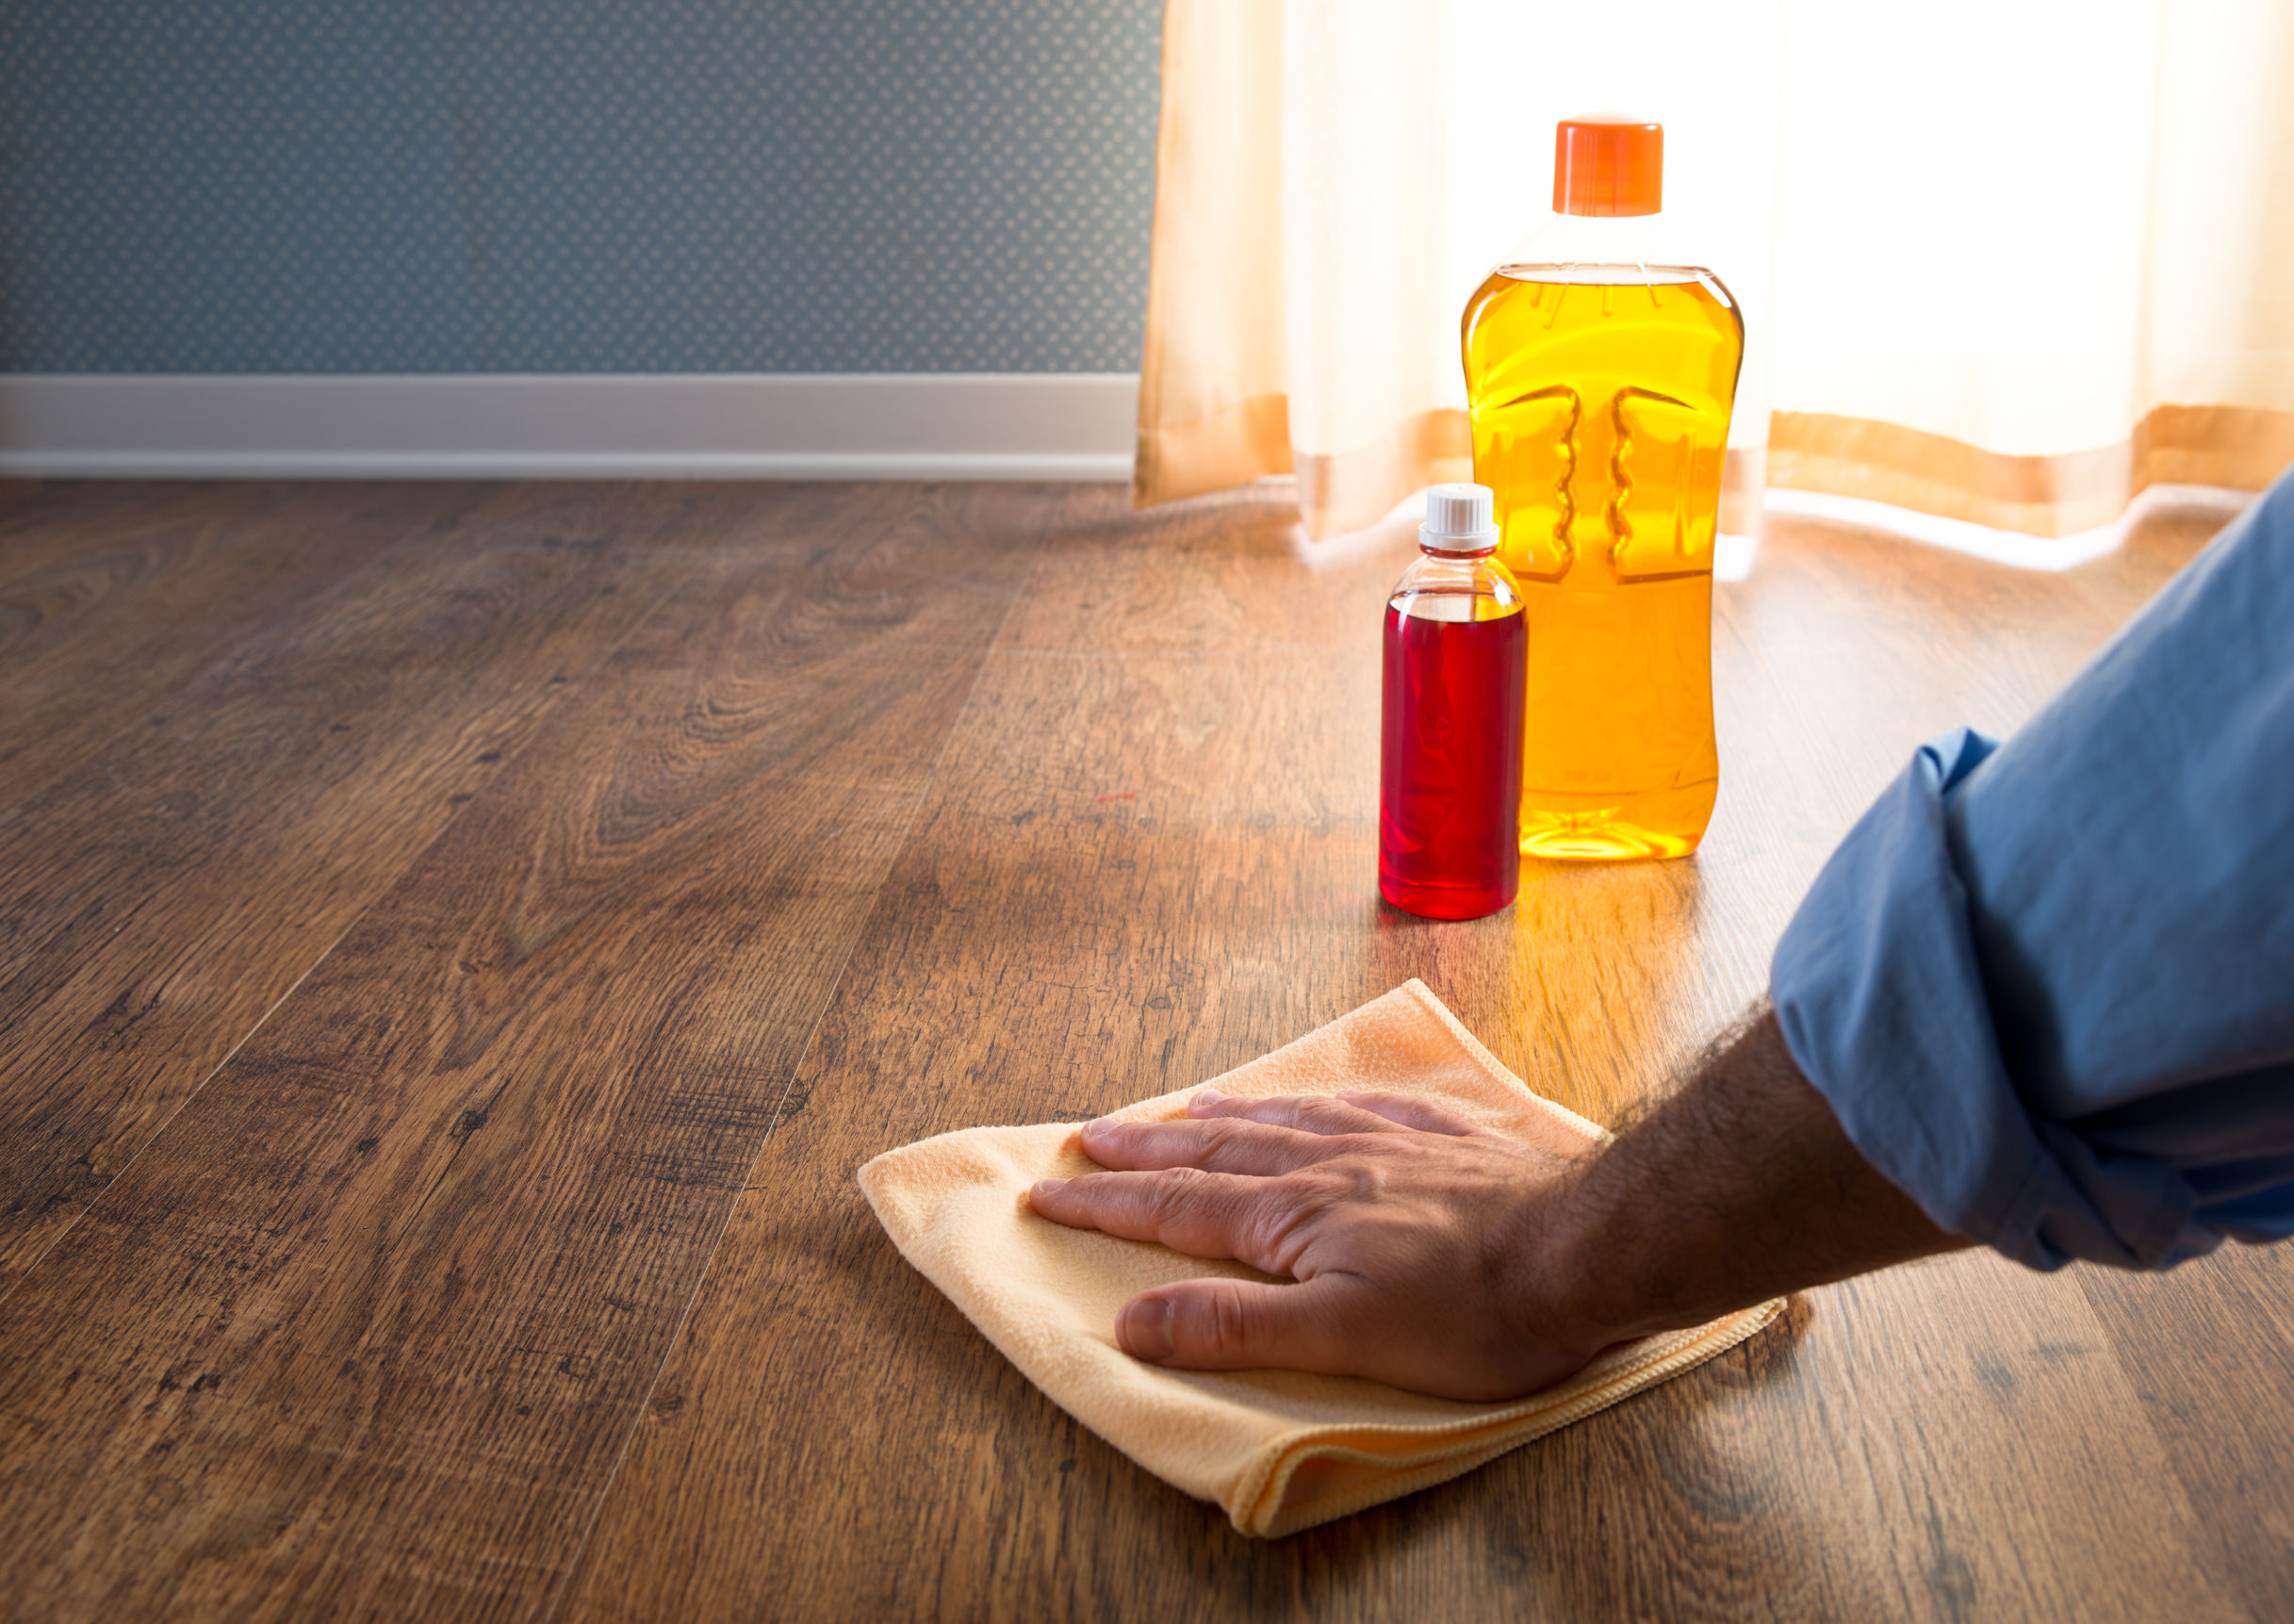 Hardwood floor wax liquid wax is easier to apply in a thinner layer than the paste, QYSAQOY